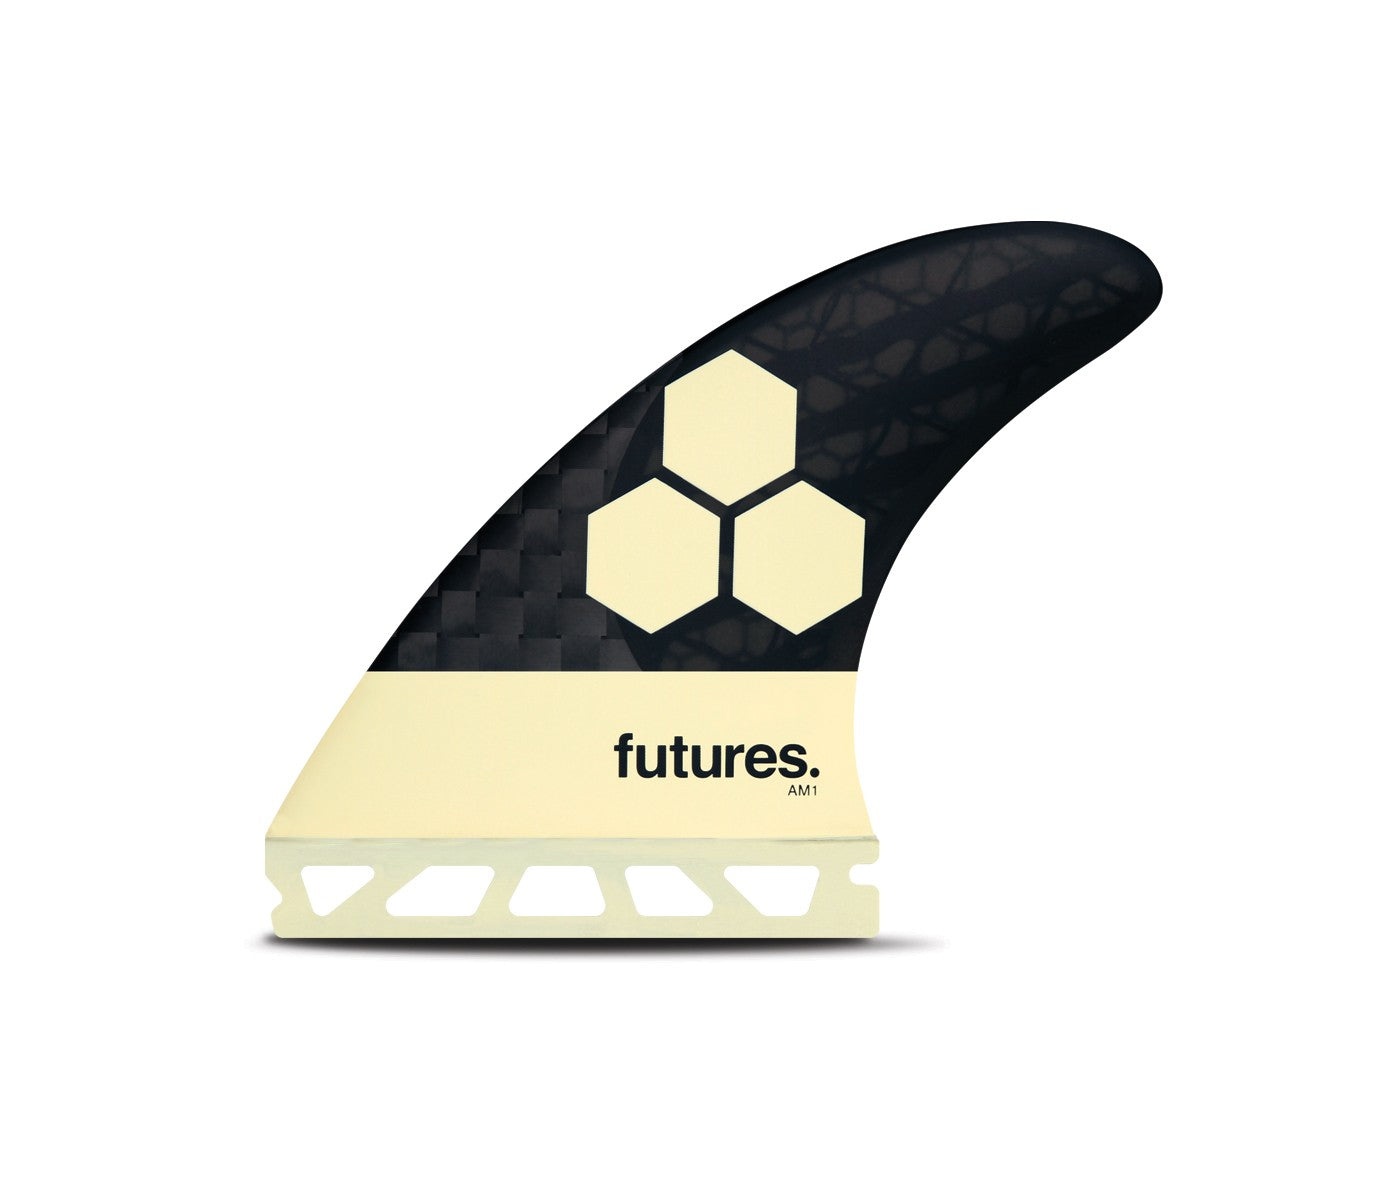 FUTURES V2 AM1 MEDIUM BLACKSTIX 3.0 THRUSTER